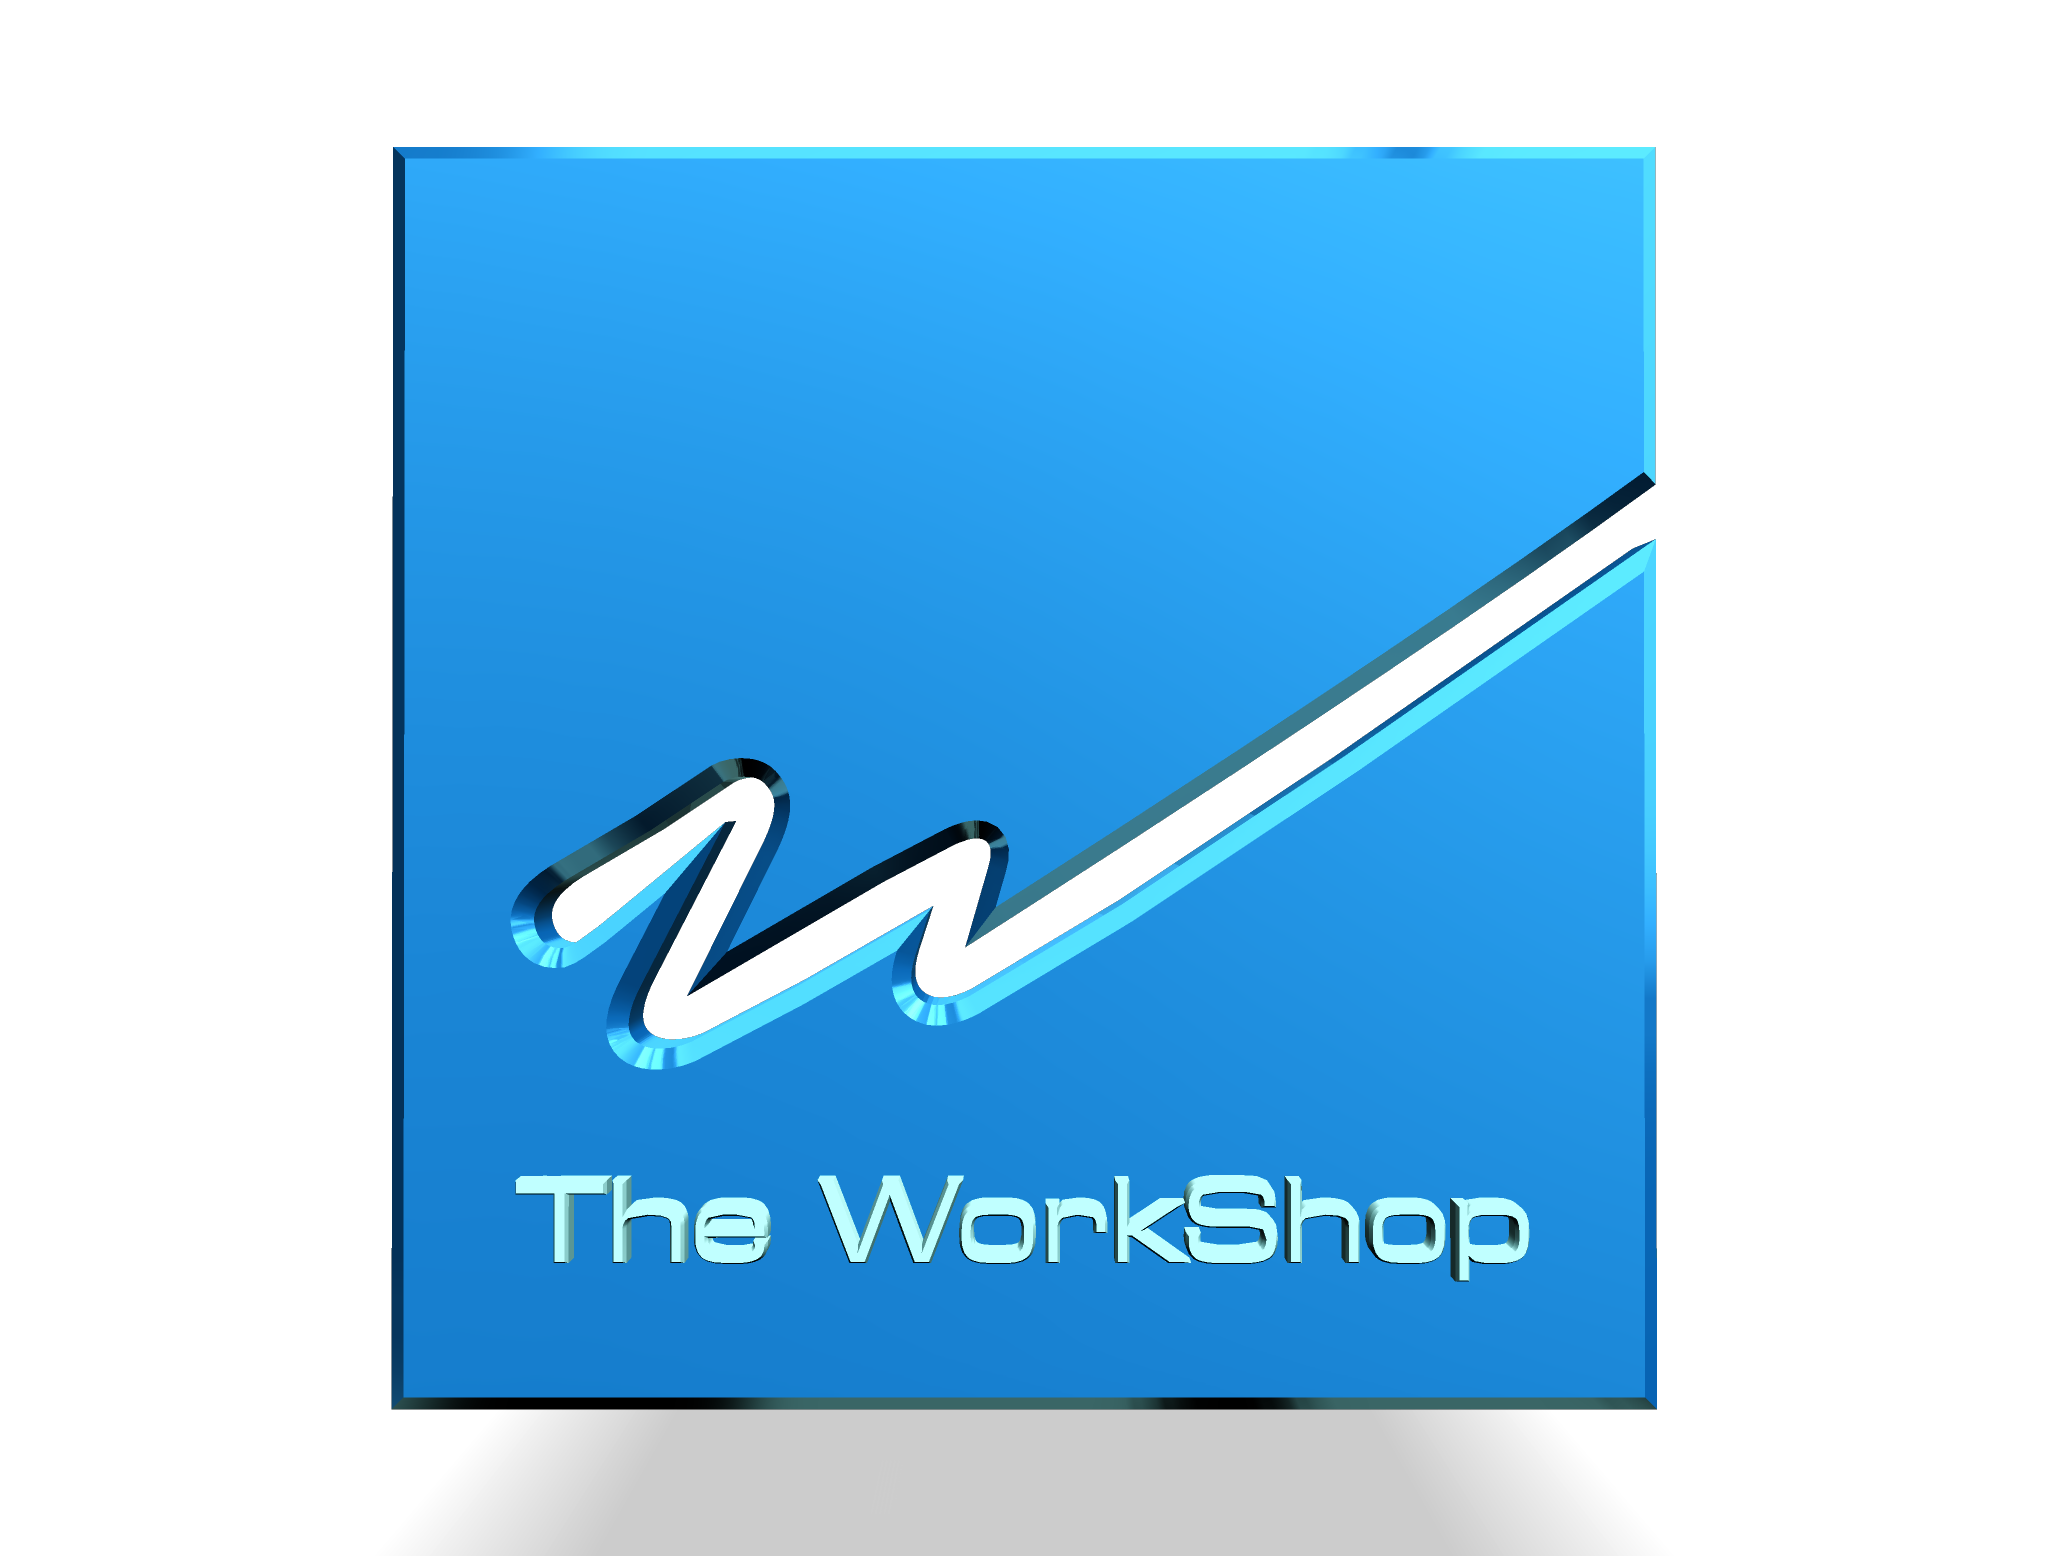 workshoplogo2.0.png